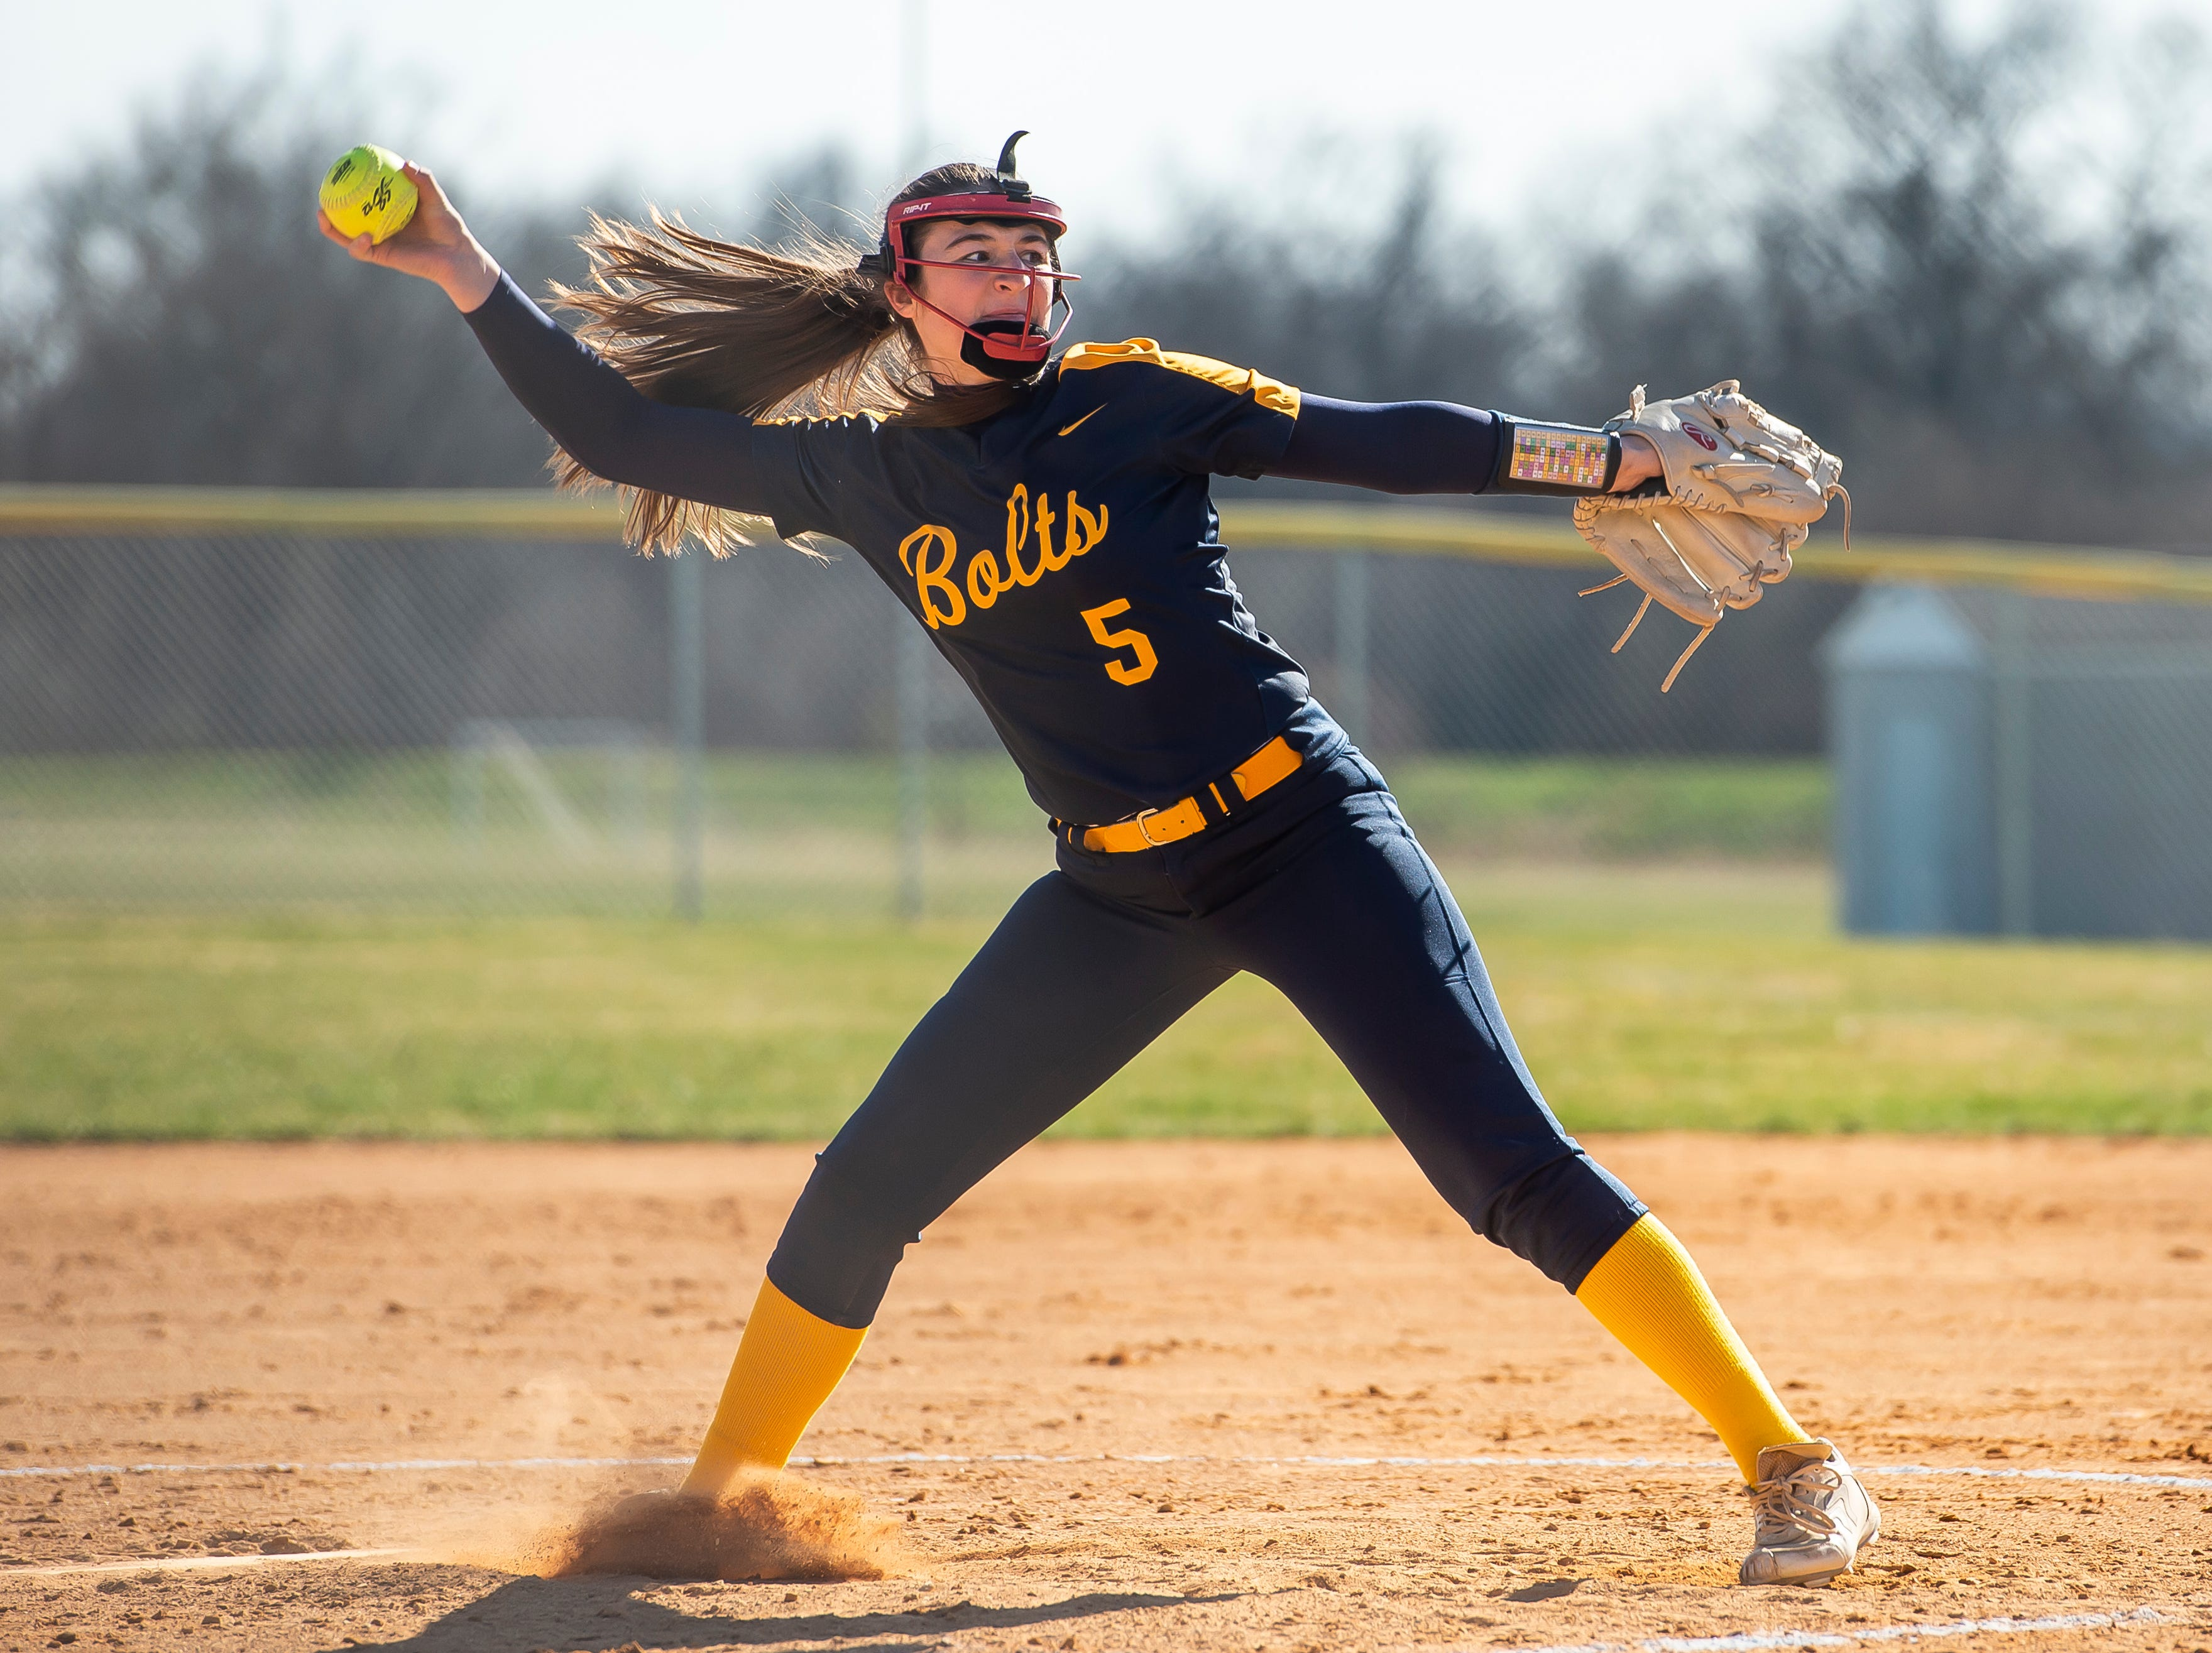 Littlestown starting pitcher Amaya Bowman throws to Gettysburg during a YAIAA softball game on Monday, April 1, 2019. The Bolts won 10-4.